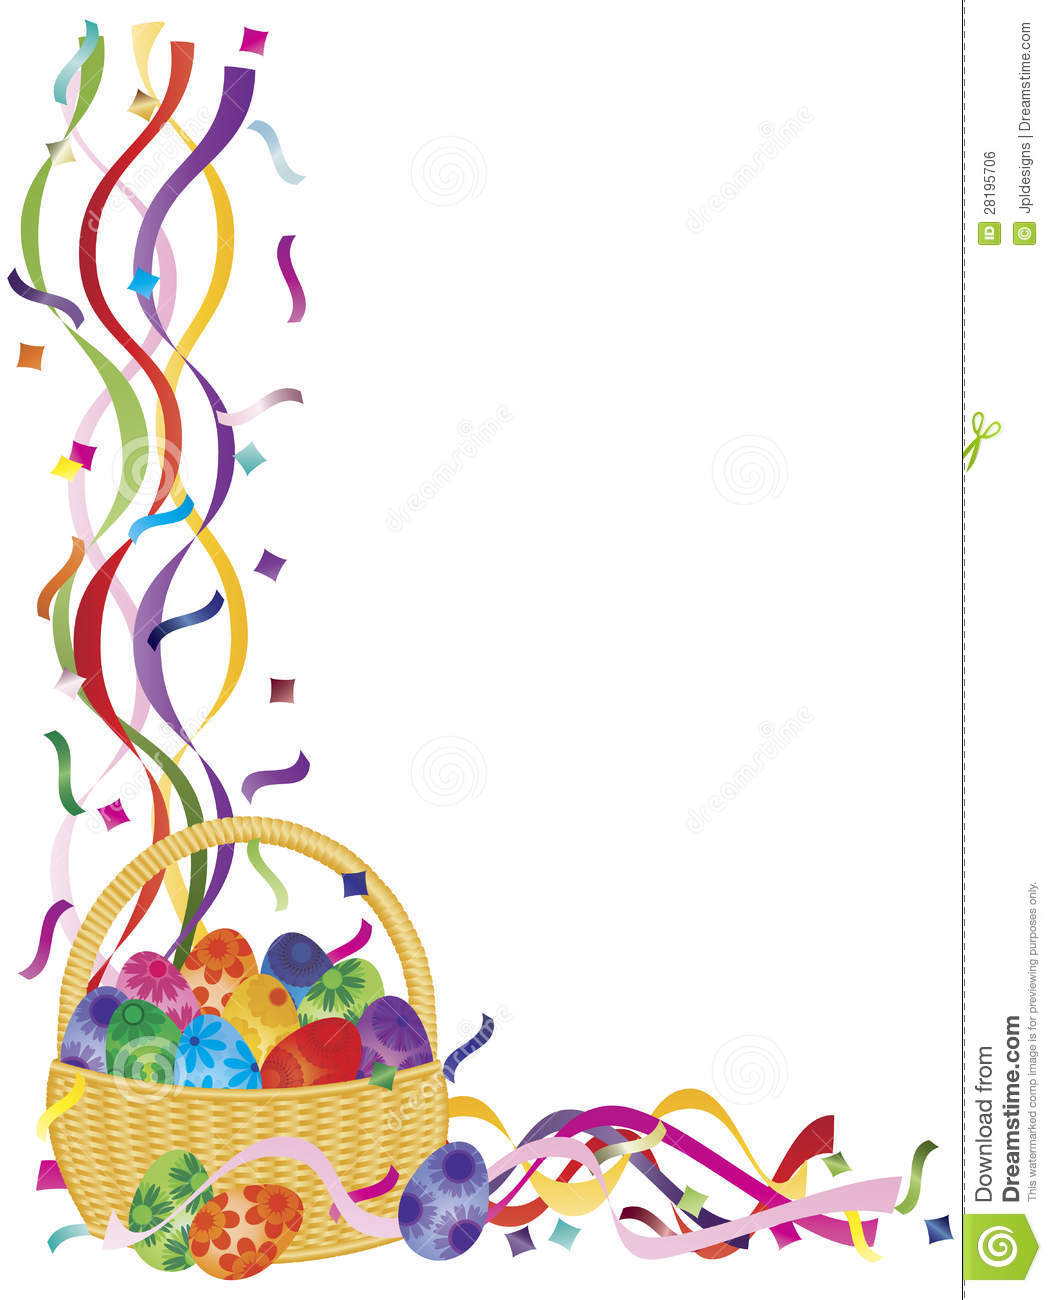 free clip art borders for easter - photo #49